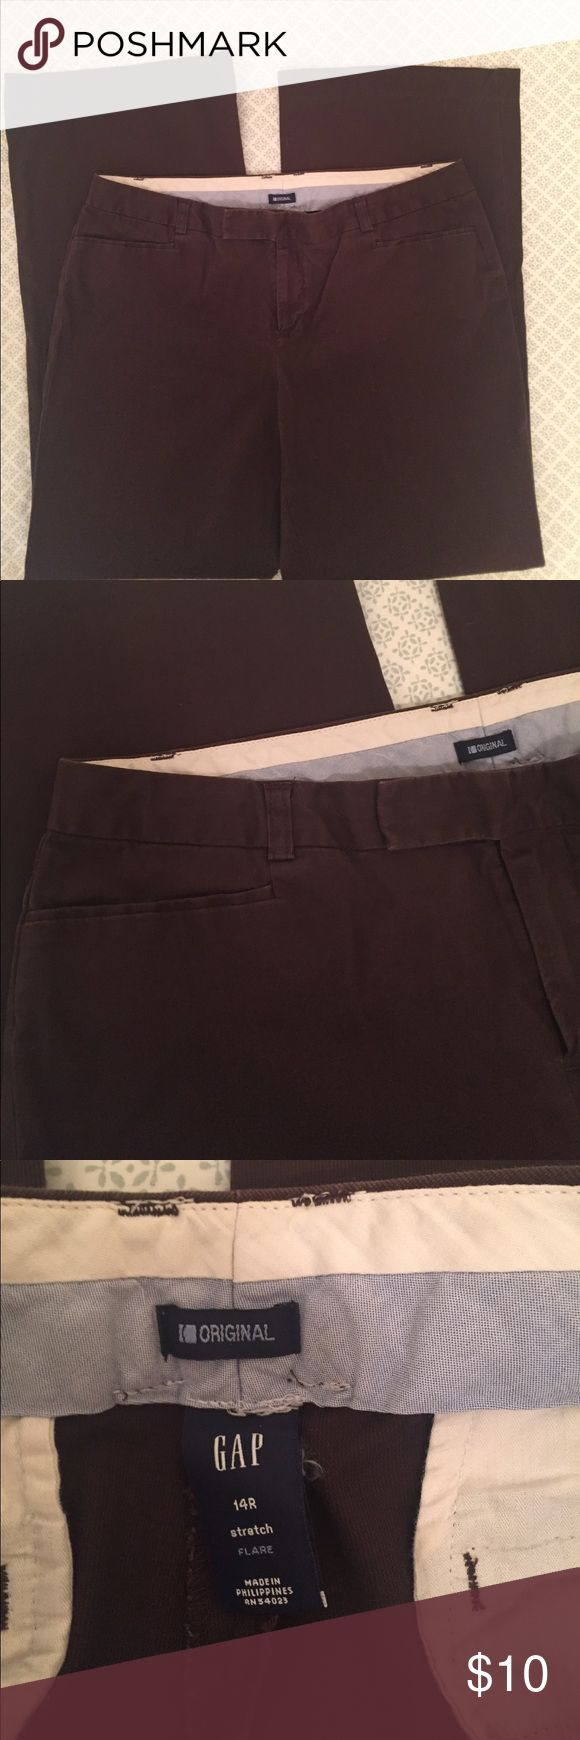 Brown slacks In excellent condition! Chocolate brown in color GAP Pants